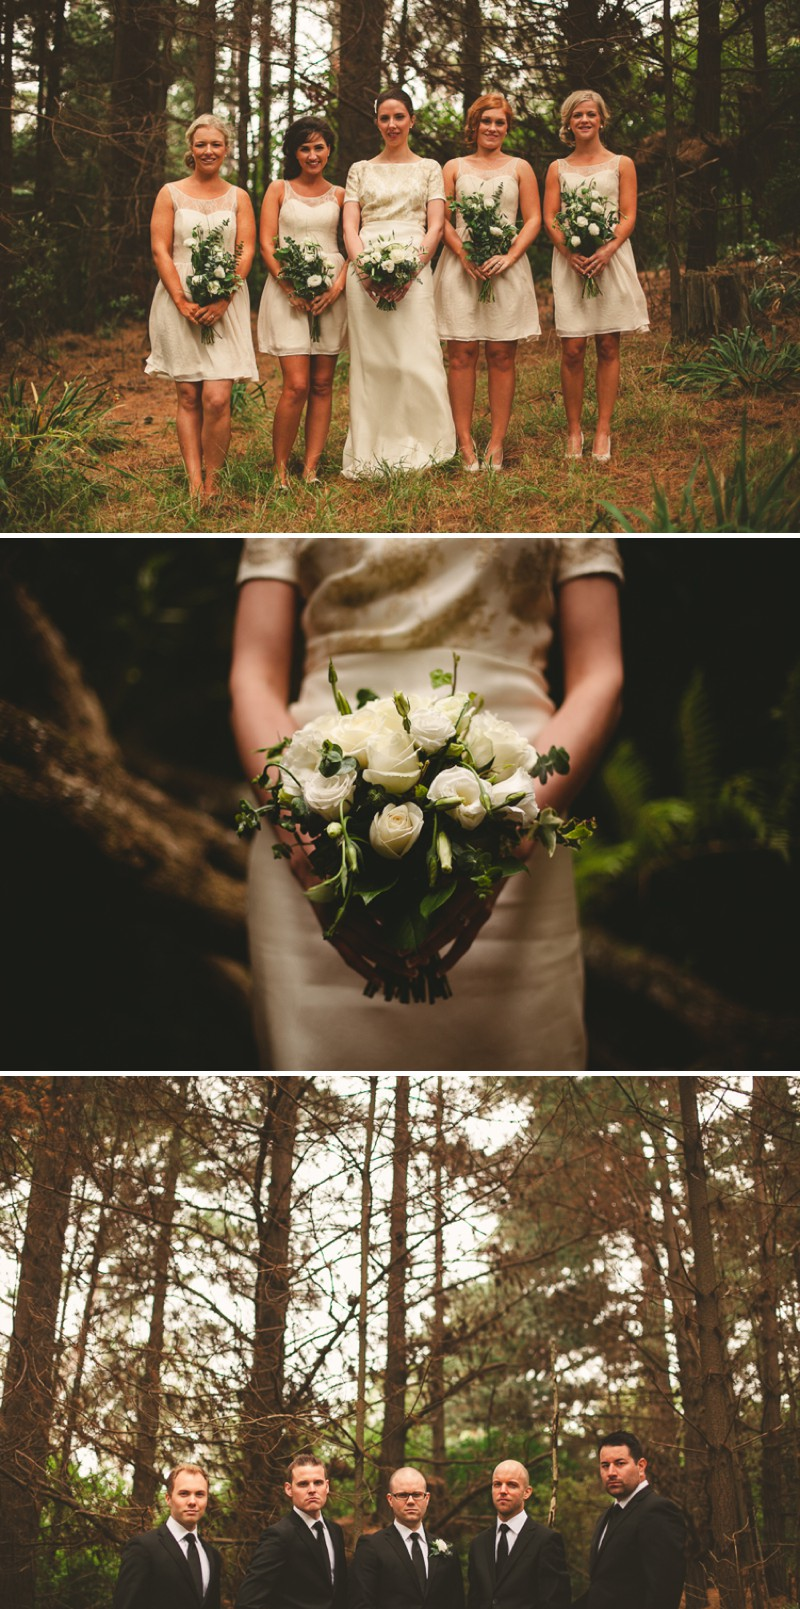 A Destination Black Tie Wedding At Gear Homestead In New Zealand With A Neutral Colour Scheme and A White Rose Bouquet By Tim Williams Photography._0008